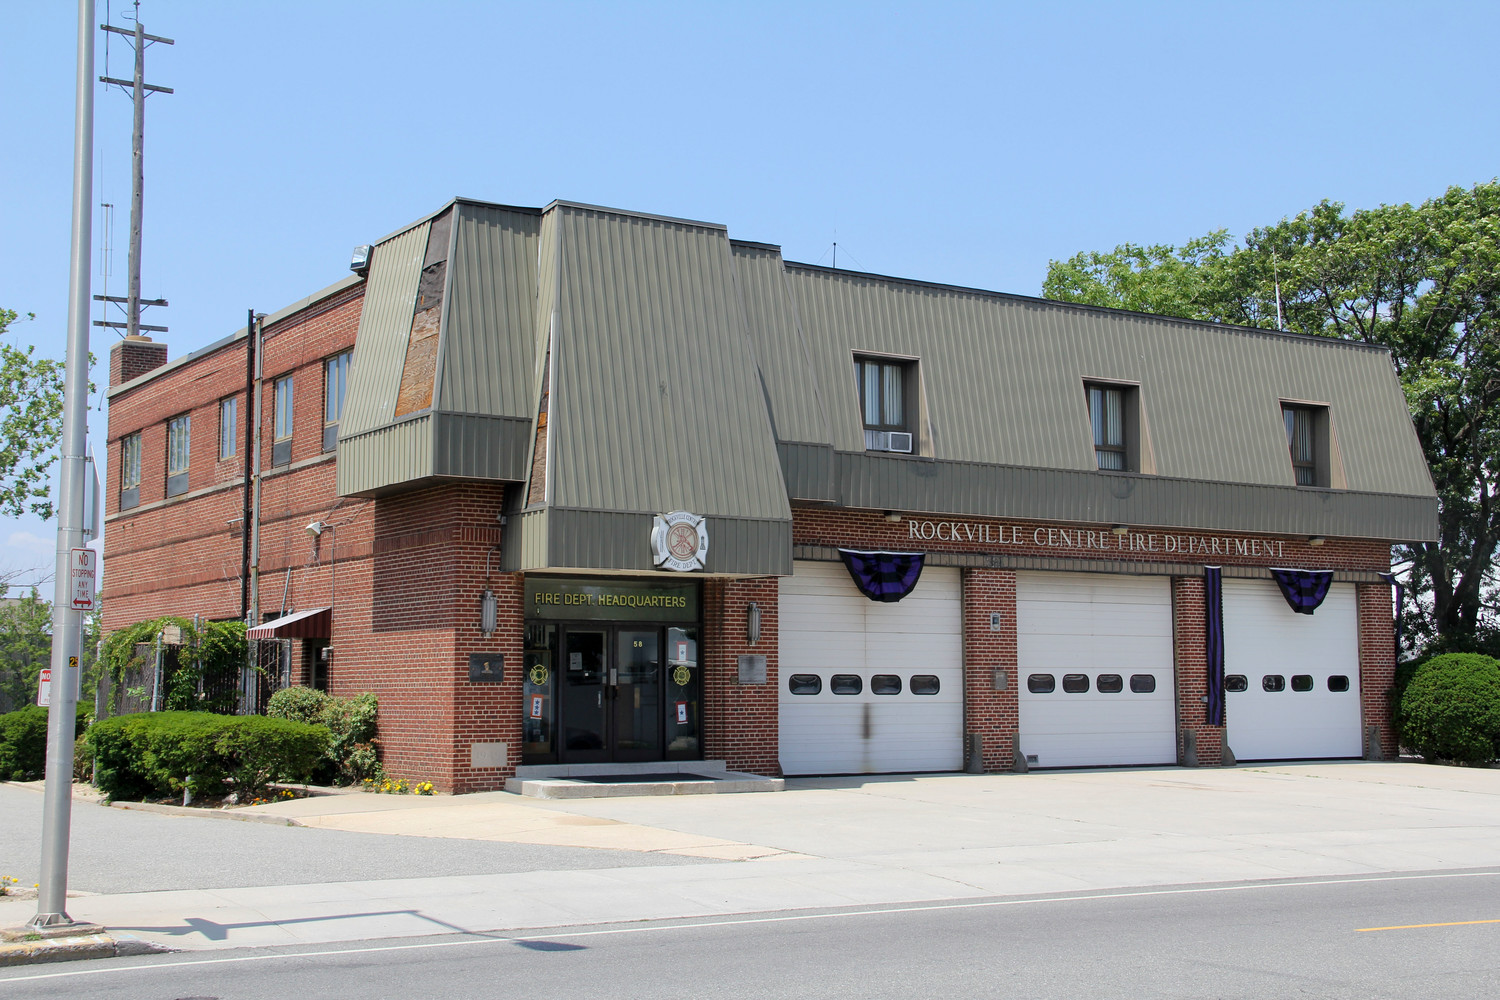 Though Floodlight Rescue Company No. 1 is an independent company, it operates out of the Rockville Centre Fire Department's headquarters on North Centre Avenue.